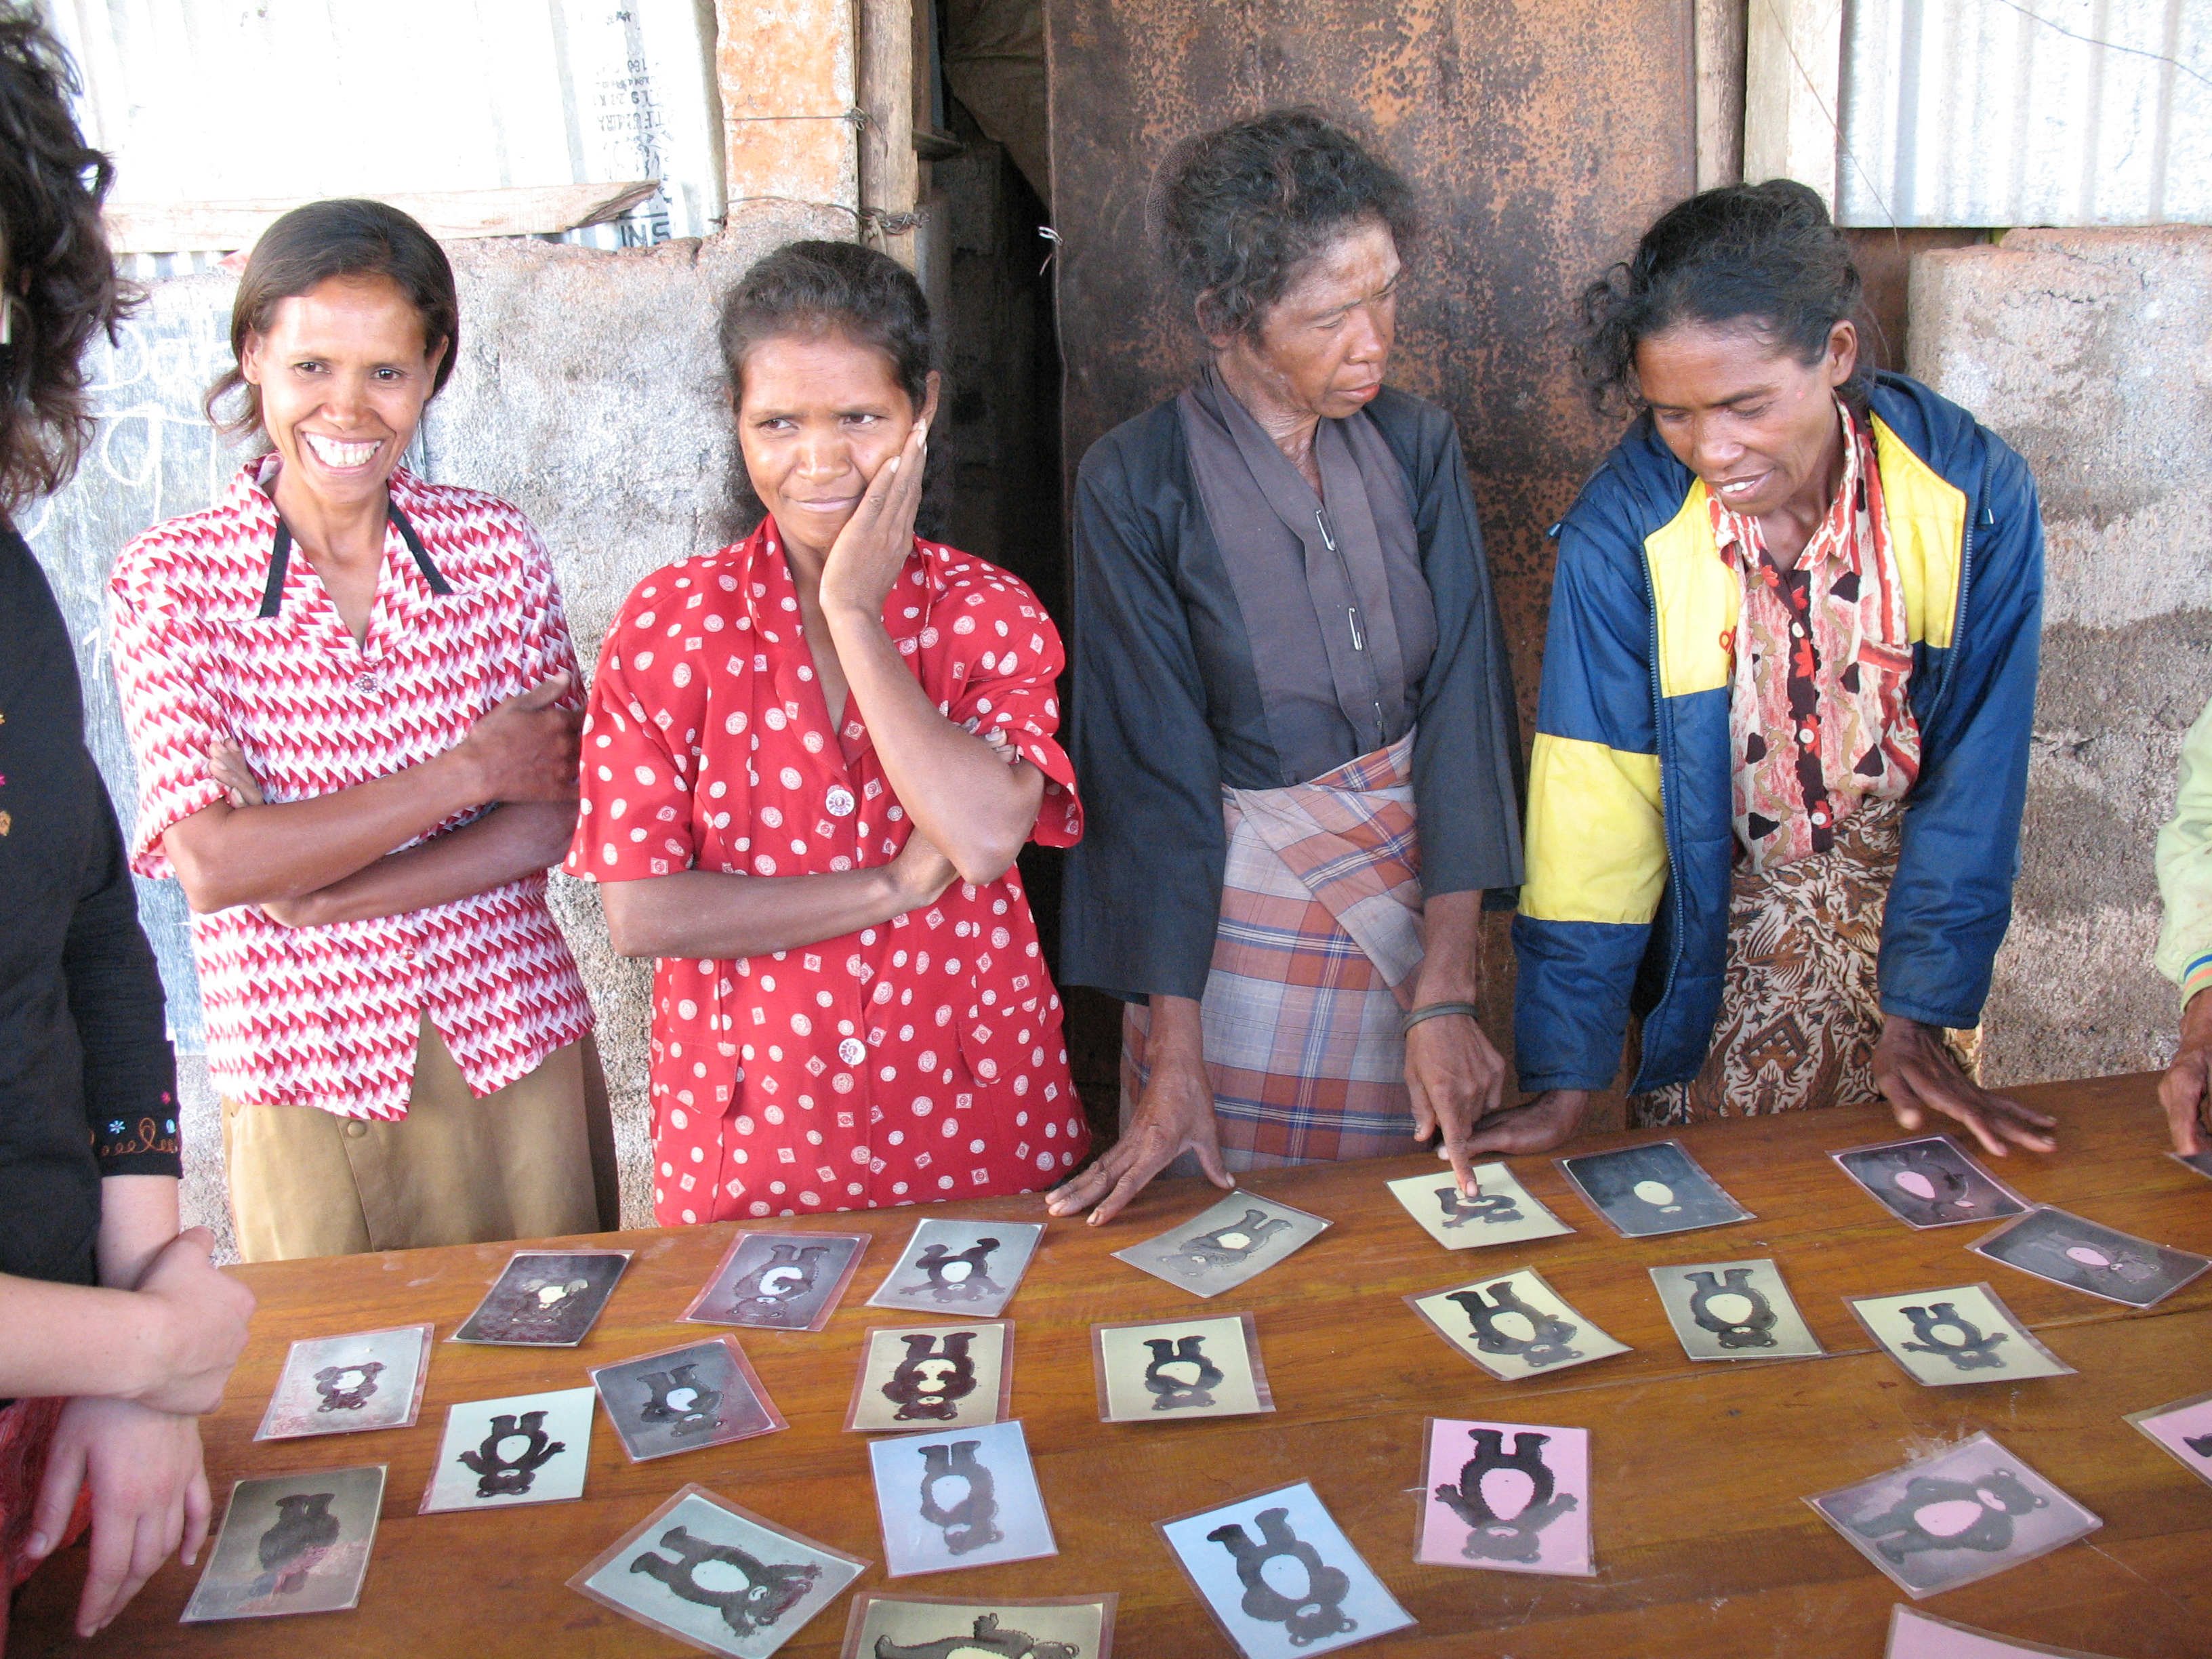 Village women develop learning materials in their local language to learn to read and write and overcome their disadvantage, in Timor-Leste. Photo by Erin McKinnon/IWDA